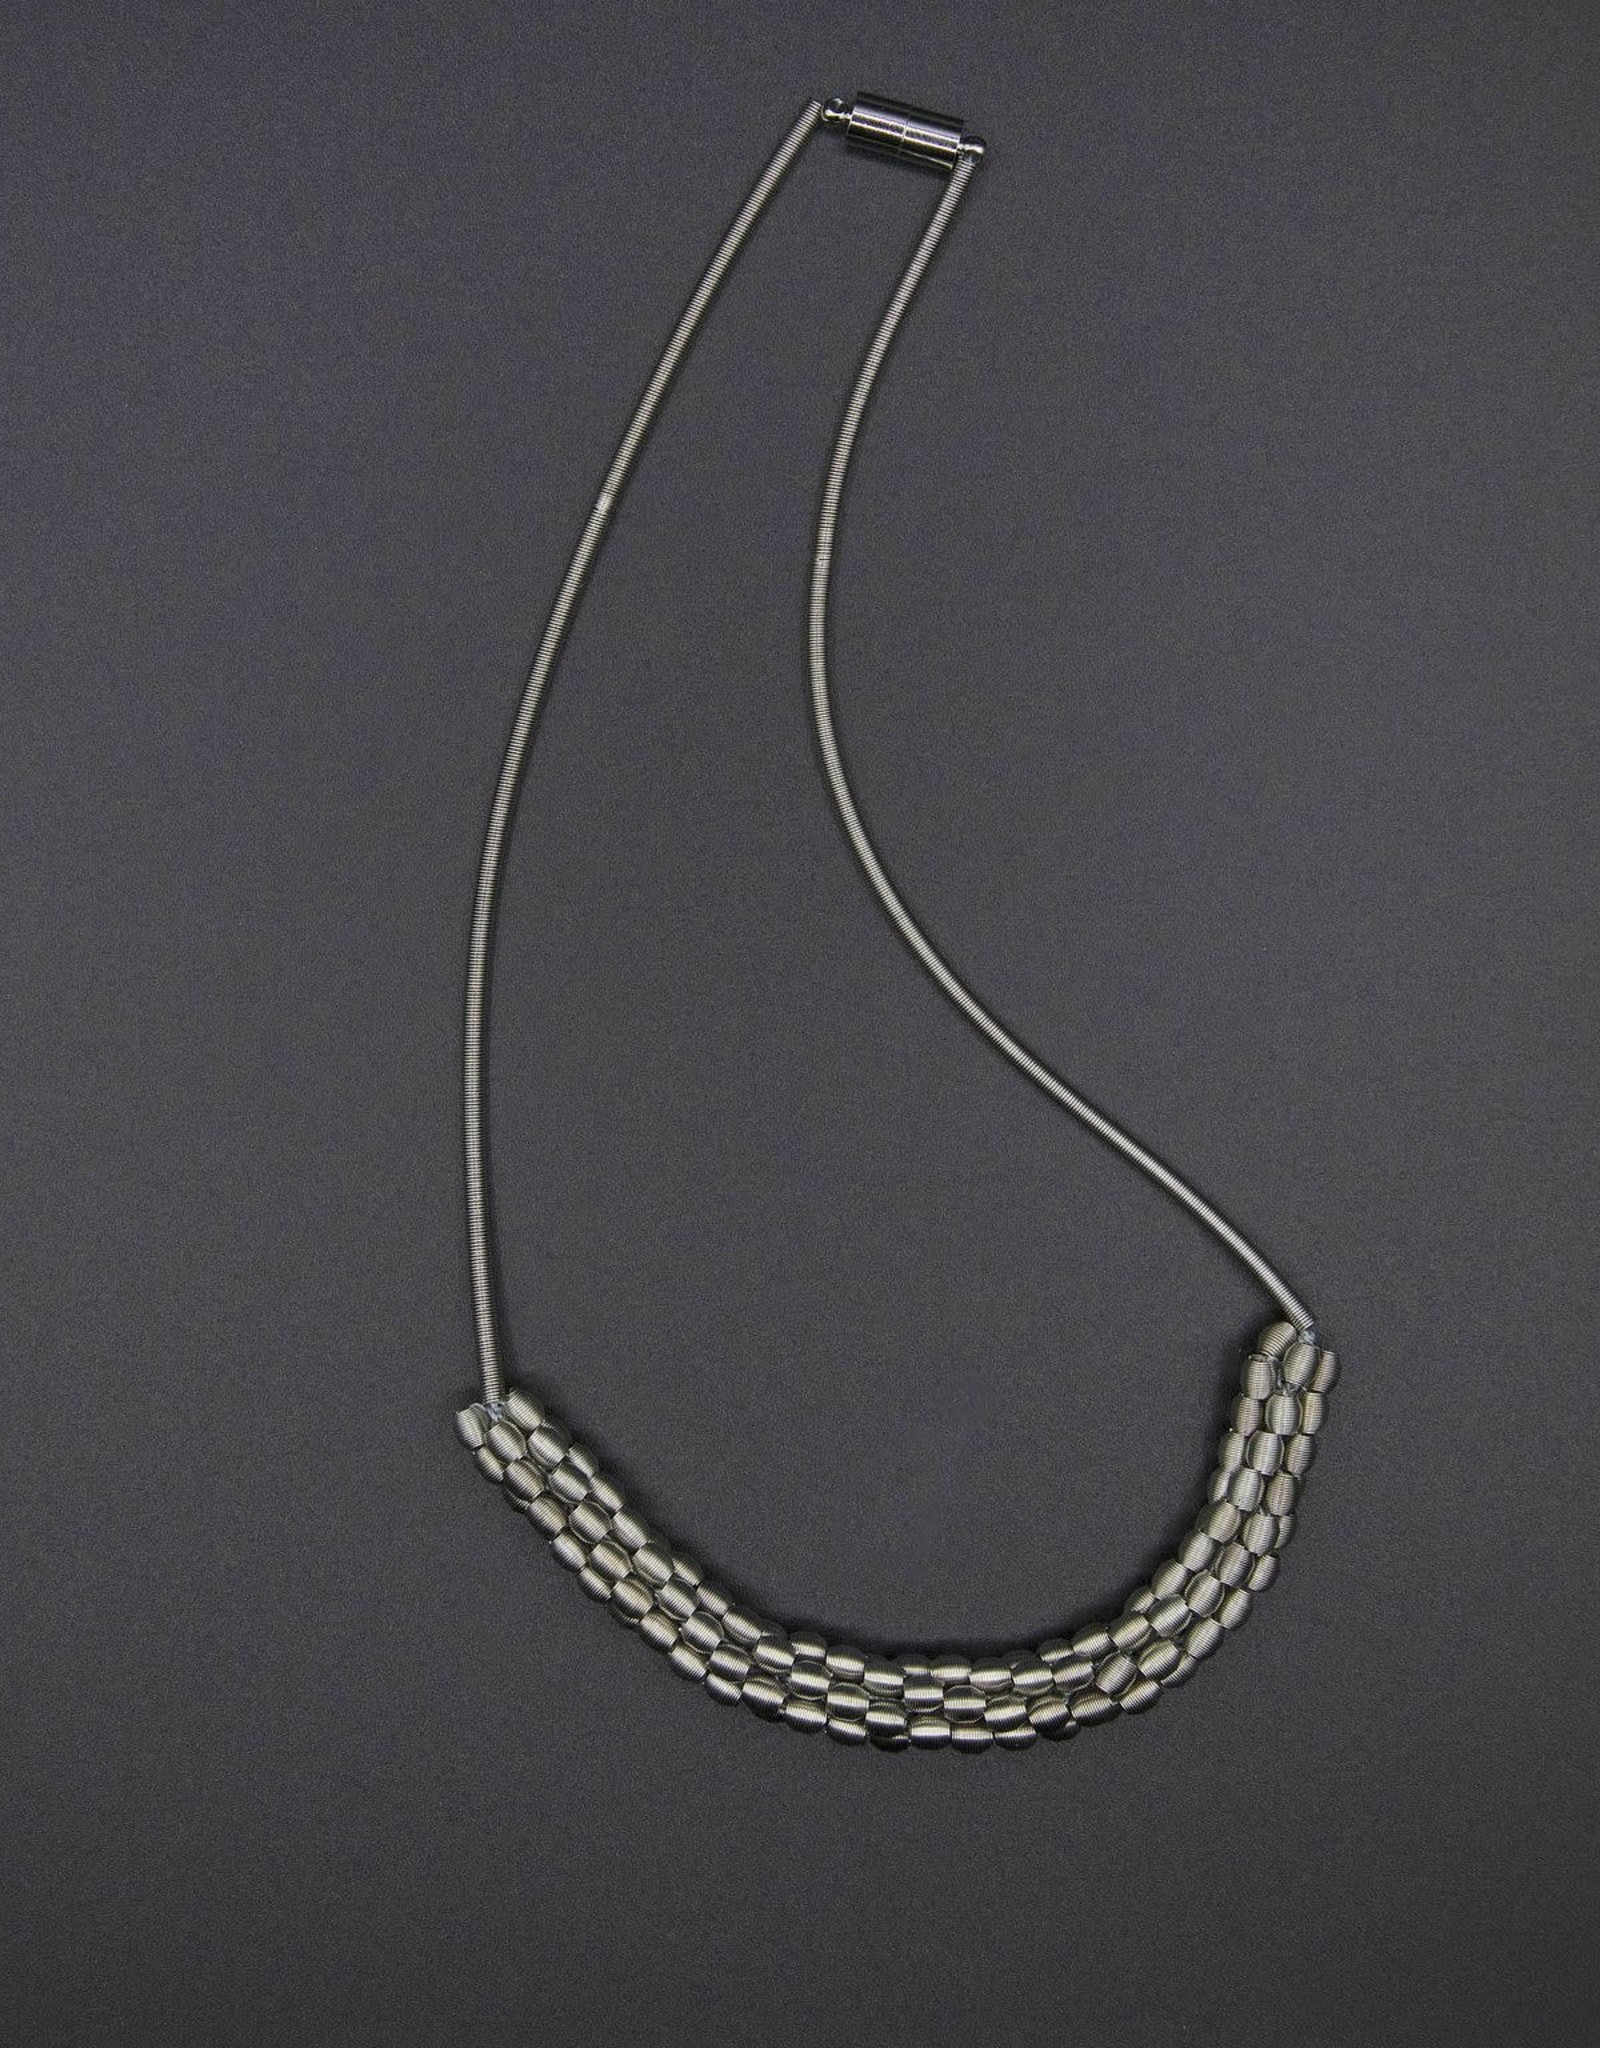 Sea-Lily Short Piano Wire Necklace w/woven Silver Beads